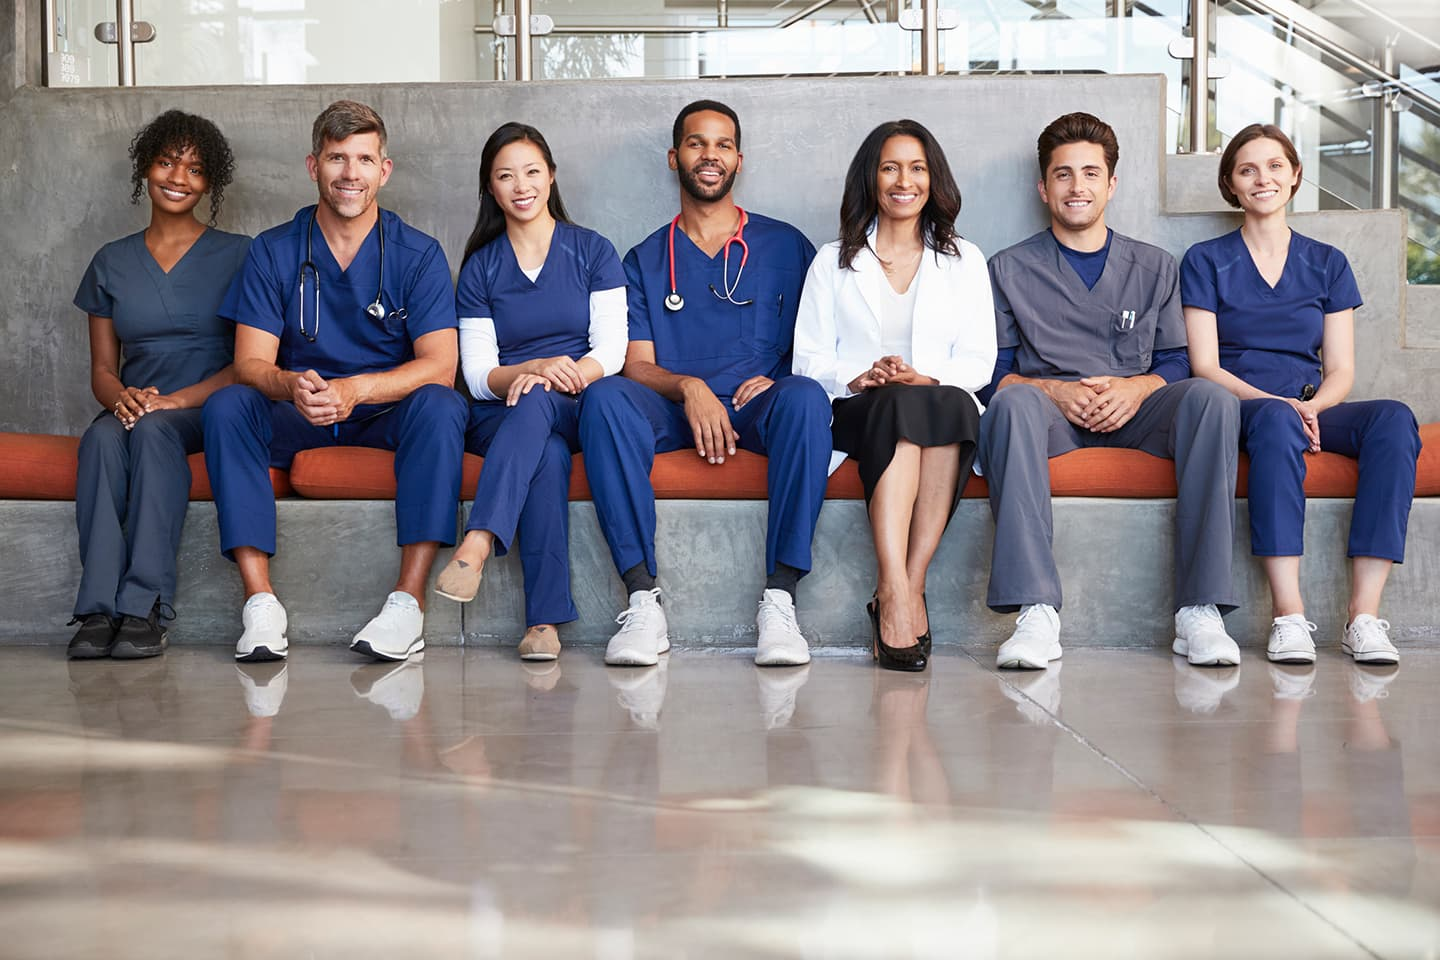 Physician Job Search: How Millennials Find a Match